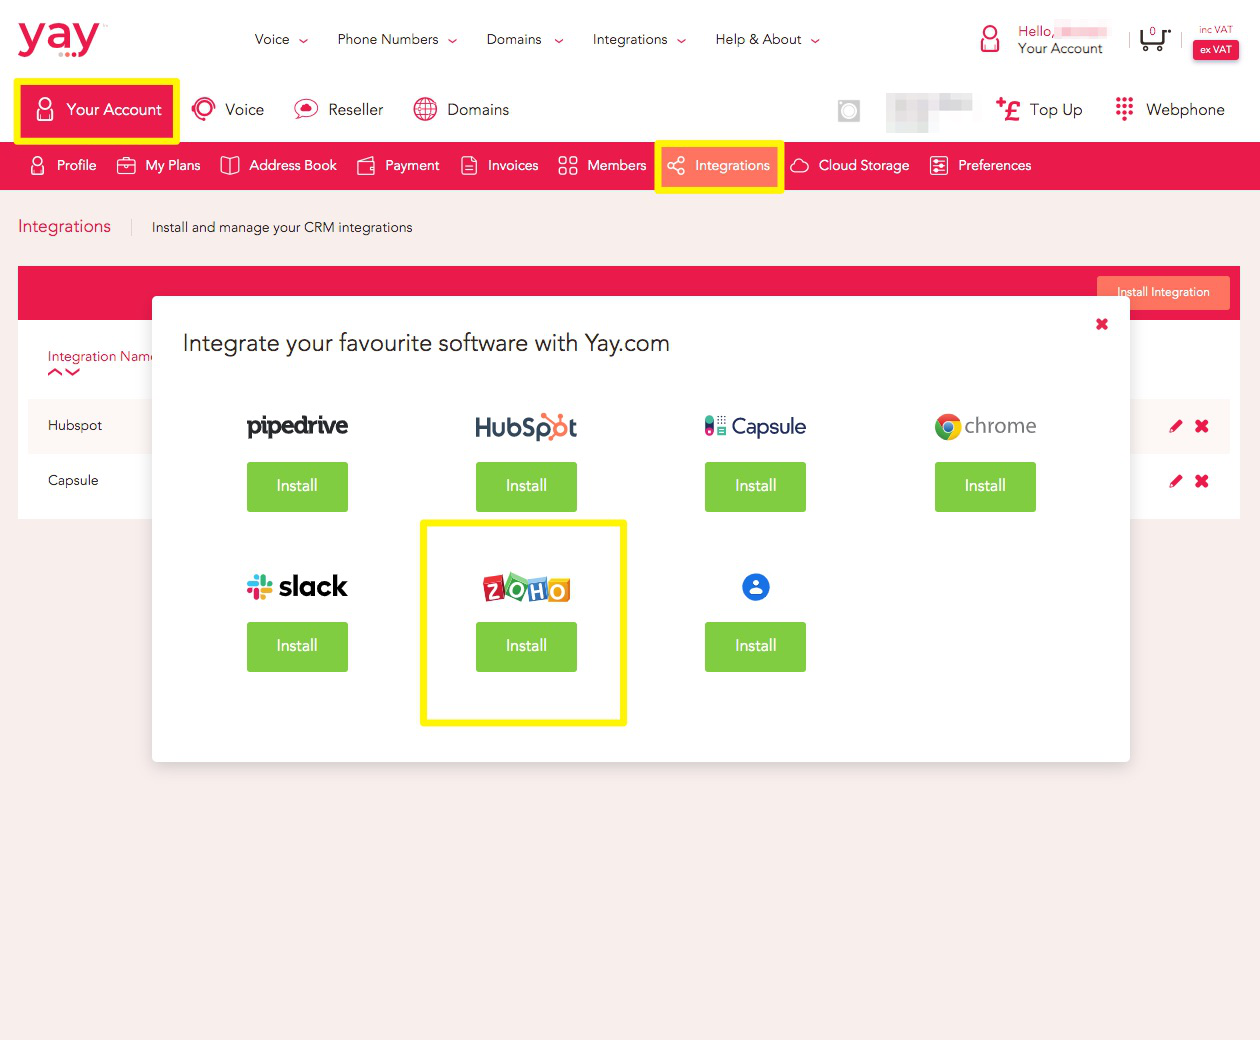 Navigating to integration in Yay.com dashboard